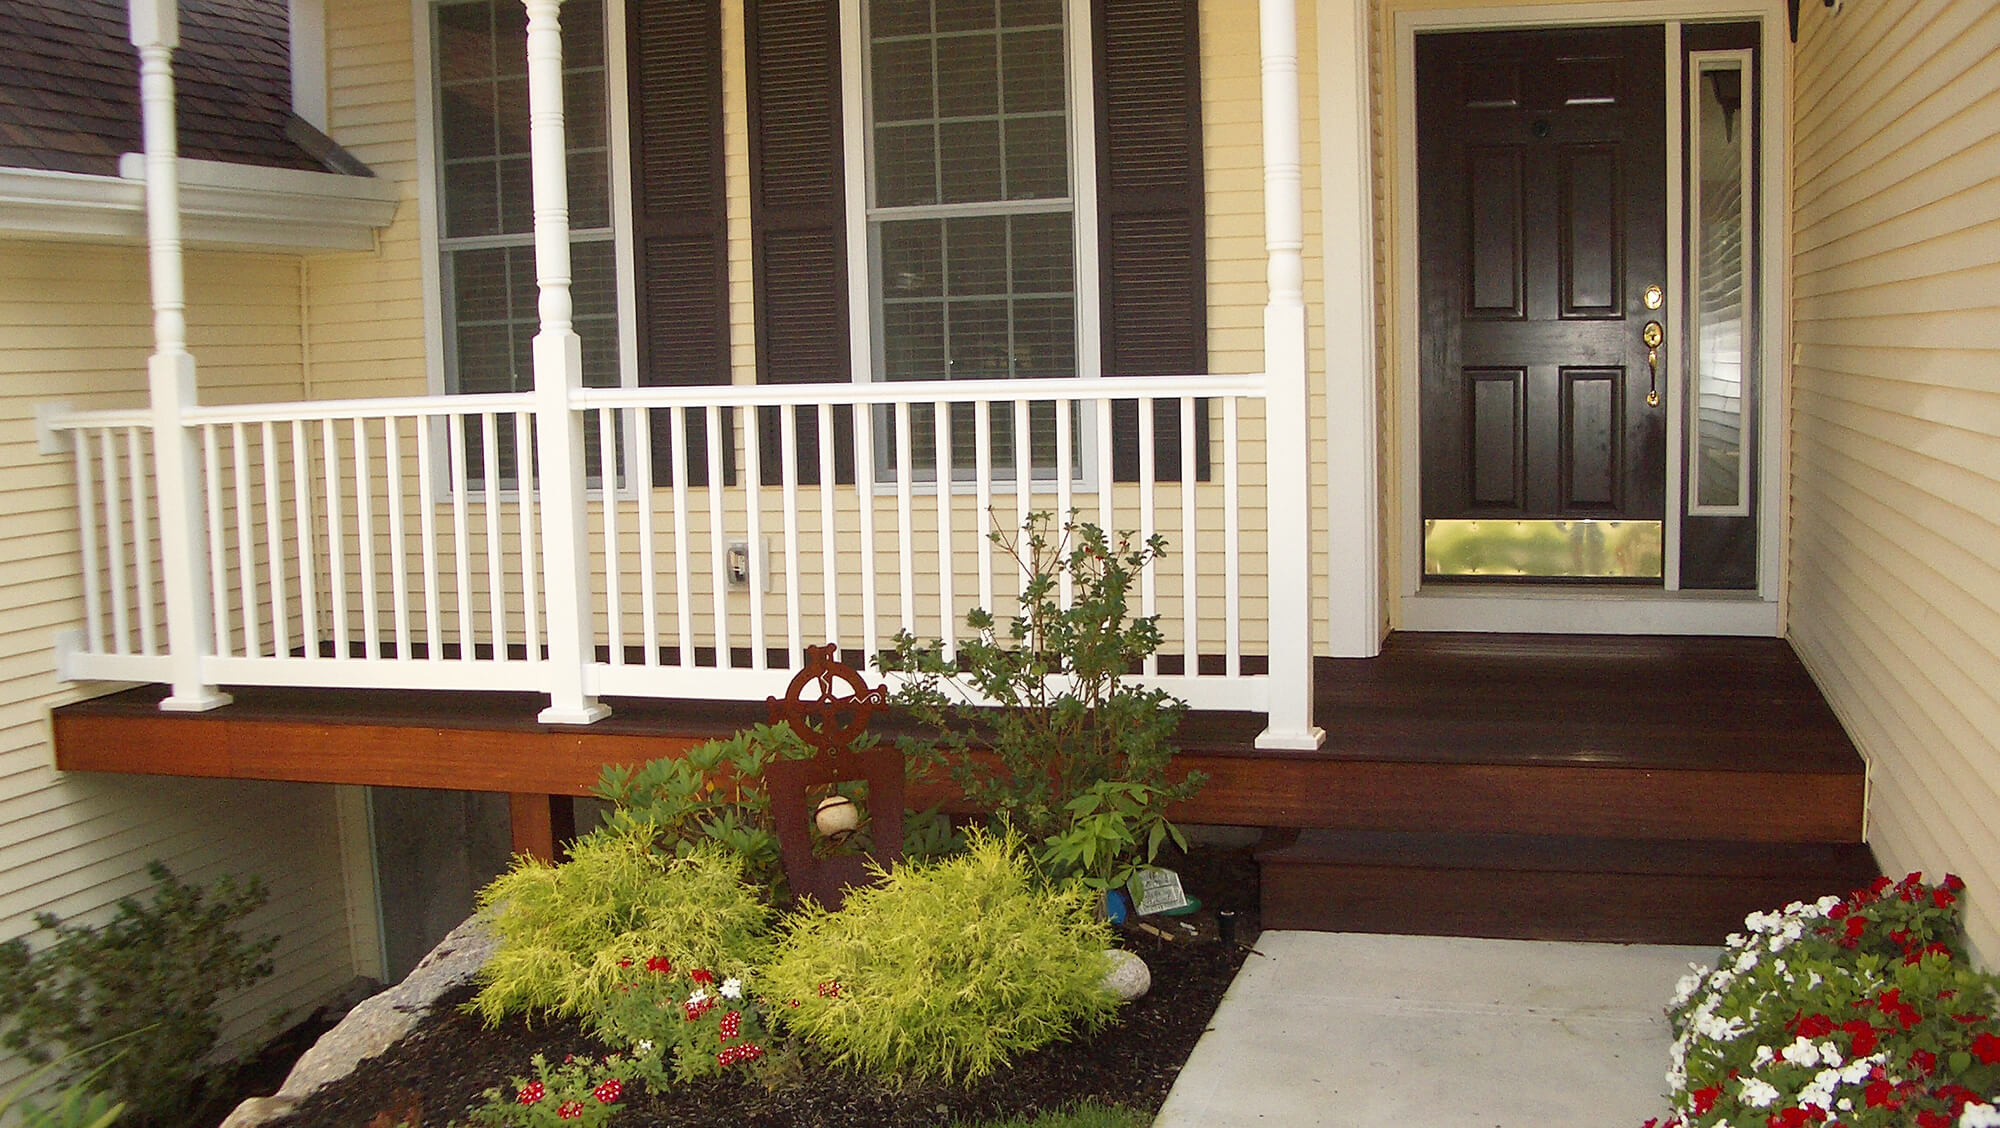 Decks, Porches, Railings, Stairs, Front Doors - We Use Only Quality Materials - JD Rose Company